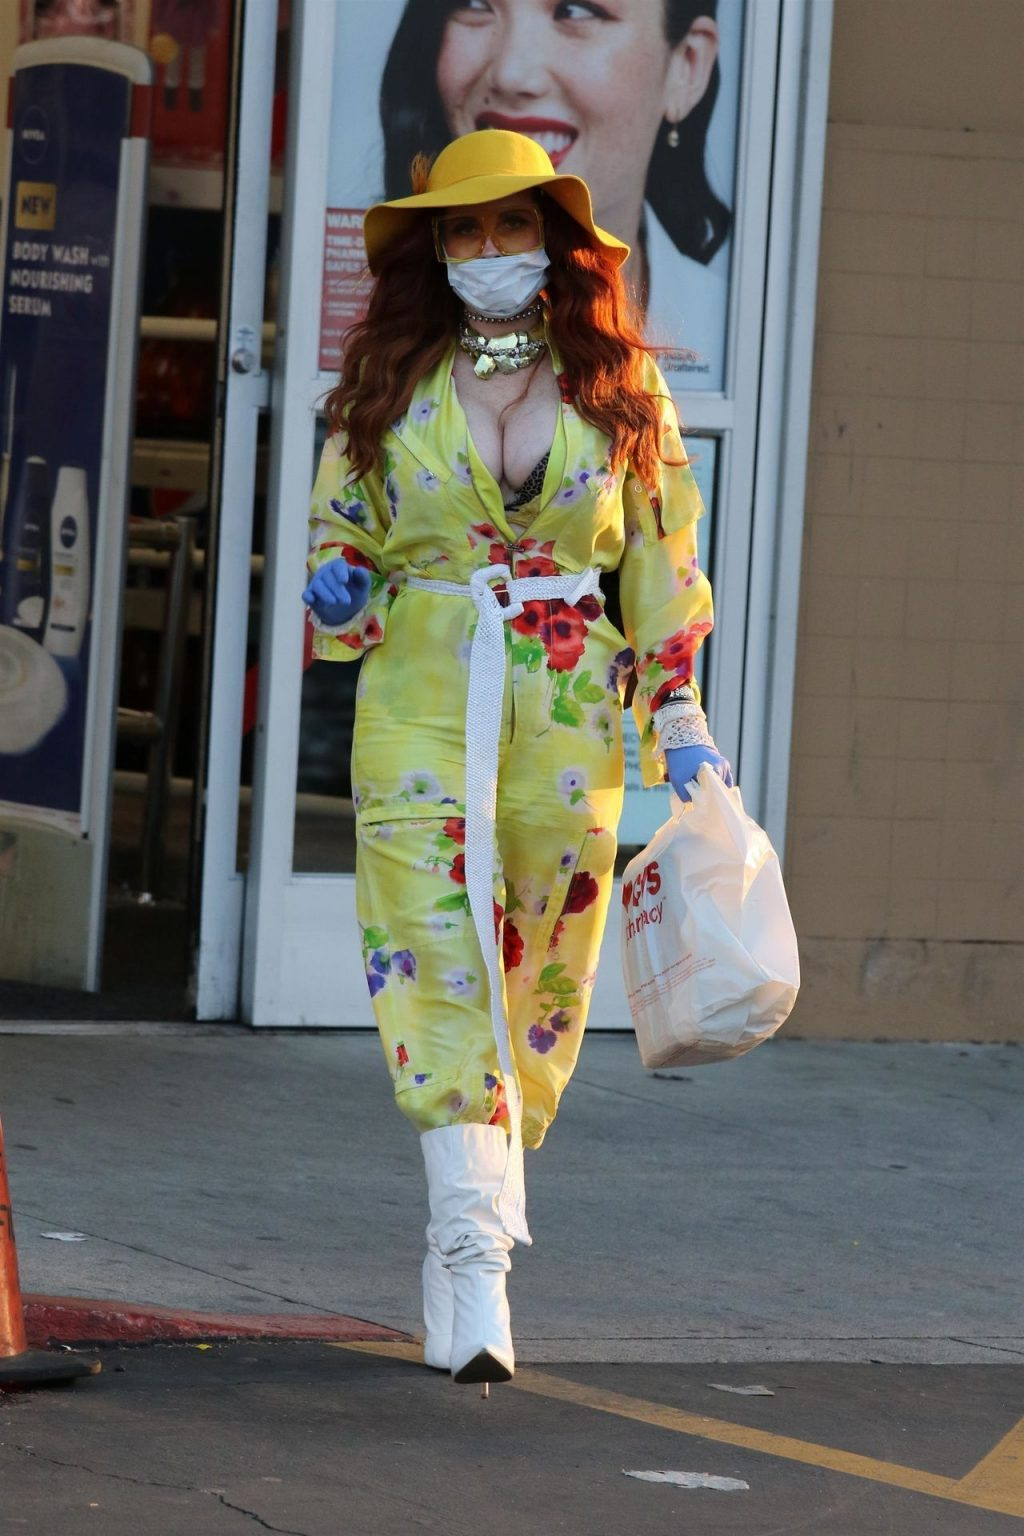 Phoebe Price Isn't Taking Any Chances When it Comes to the Coronavirus (62 Photos)